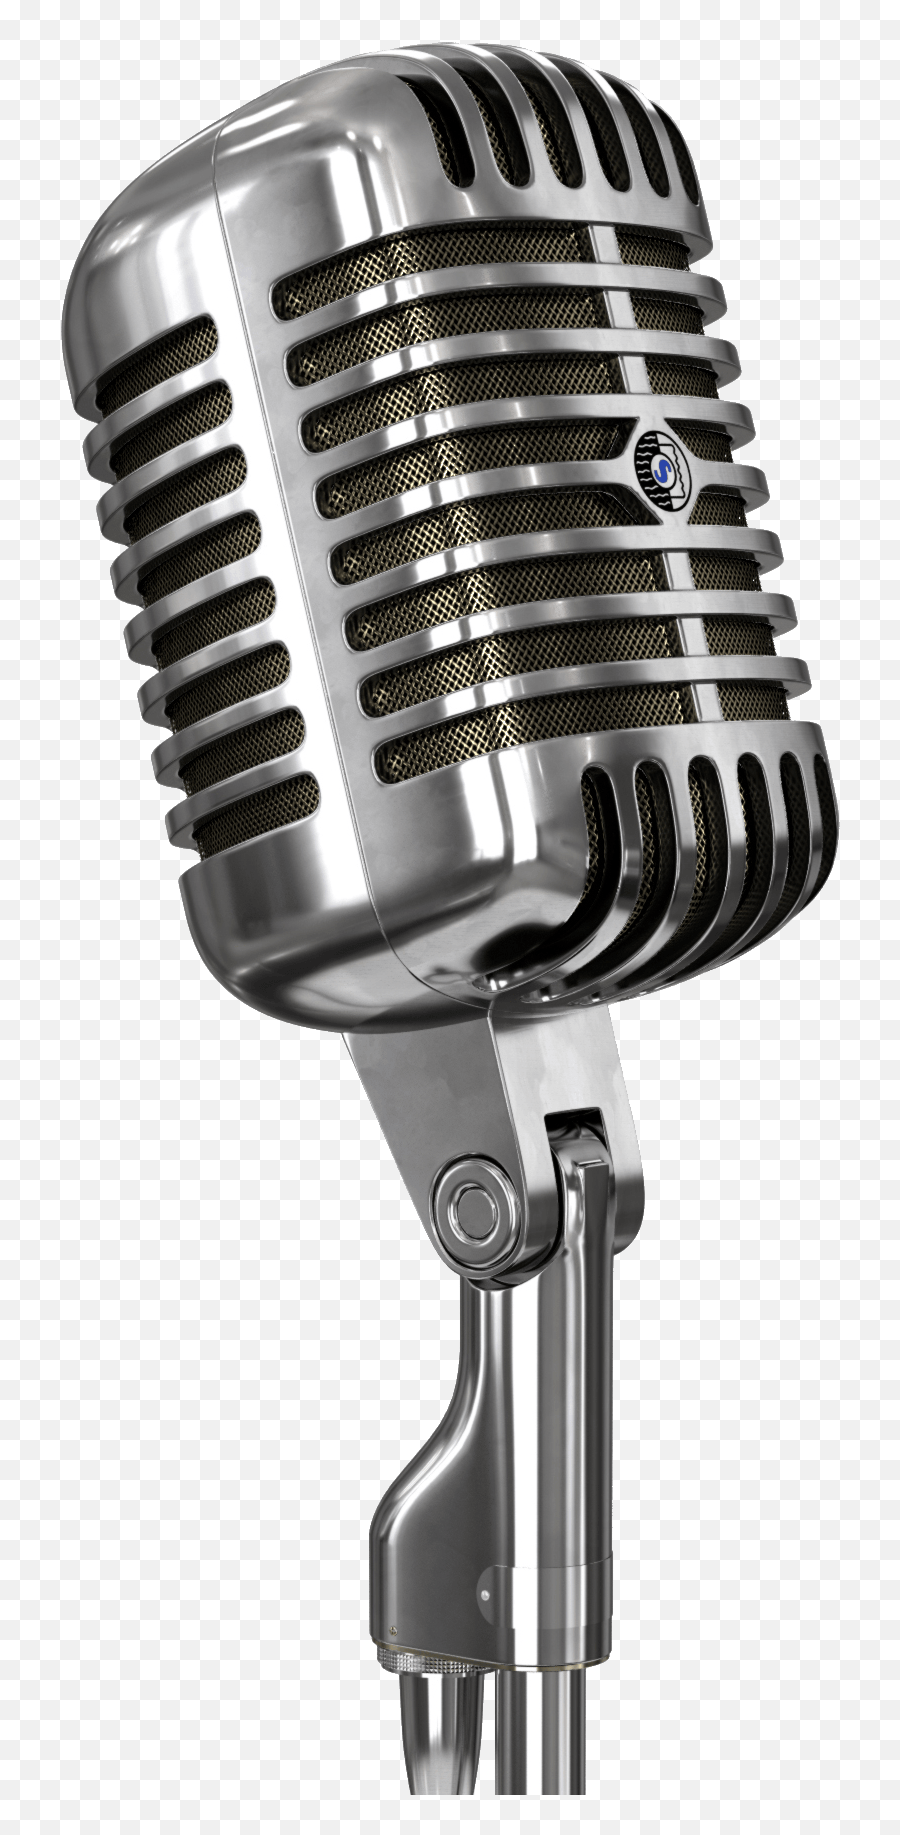 Microphone Png Images Transparent Free Download - Microphone Transparent Emoji,Mic Emoji